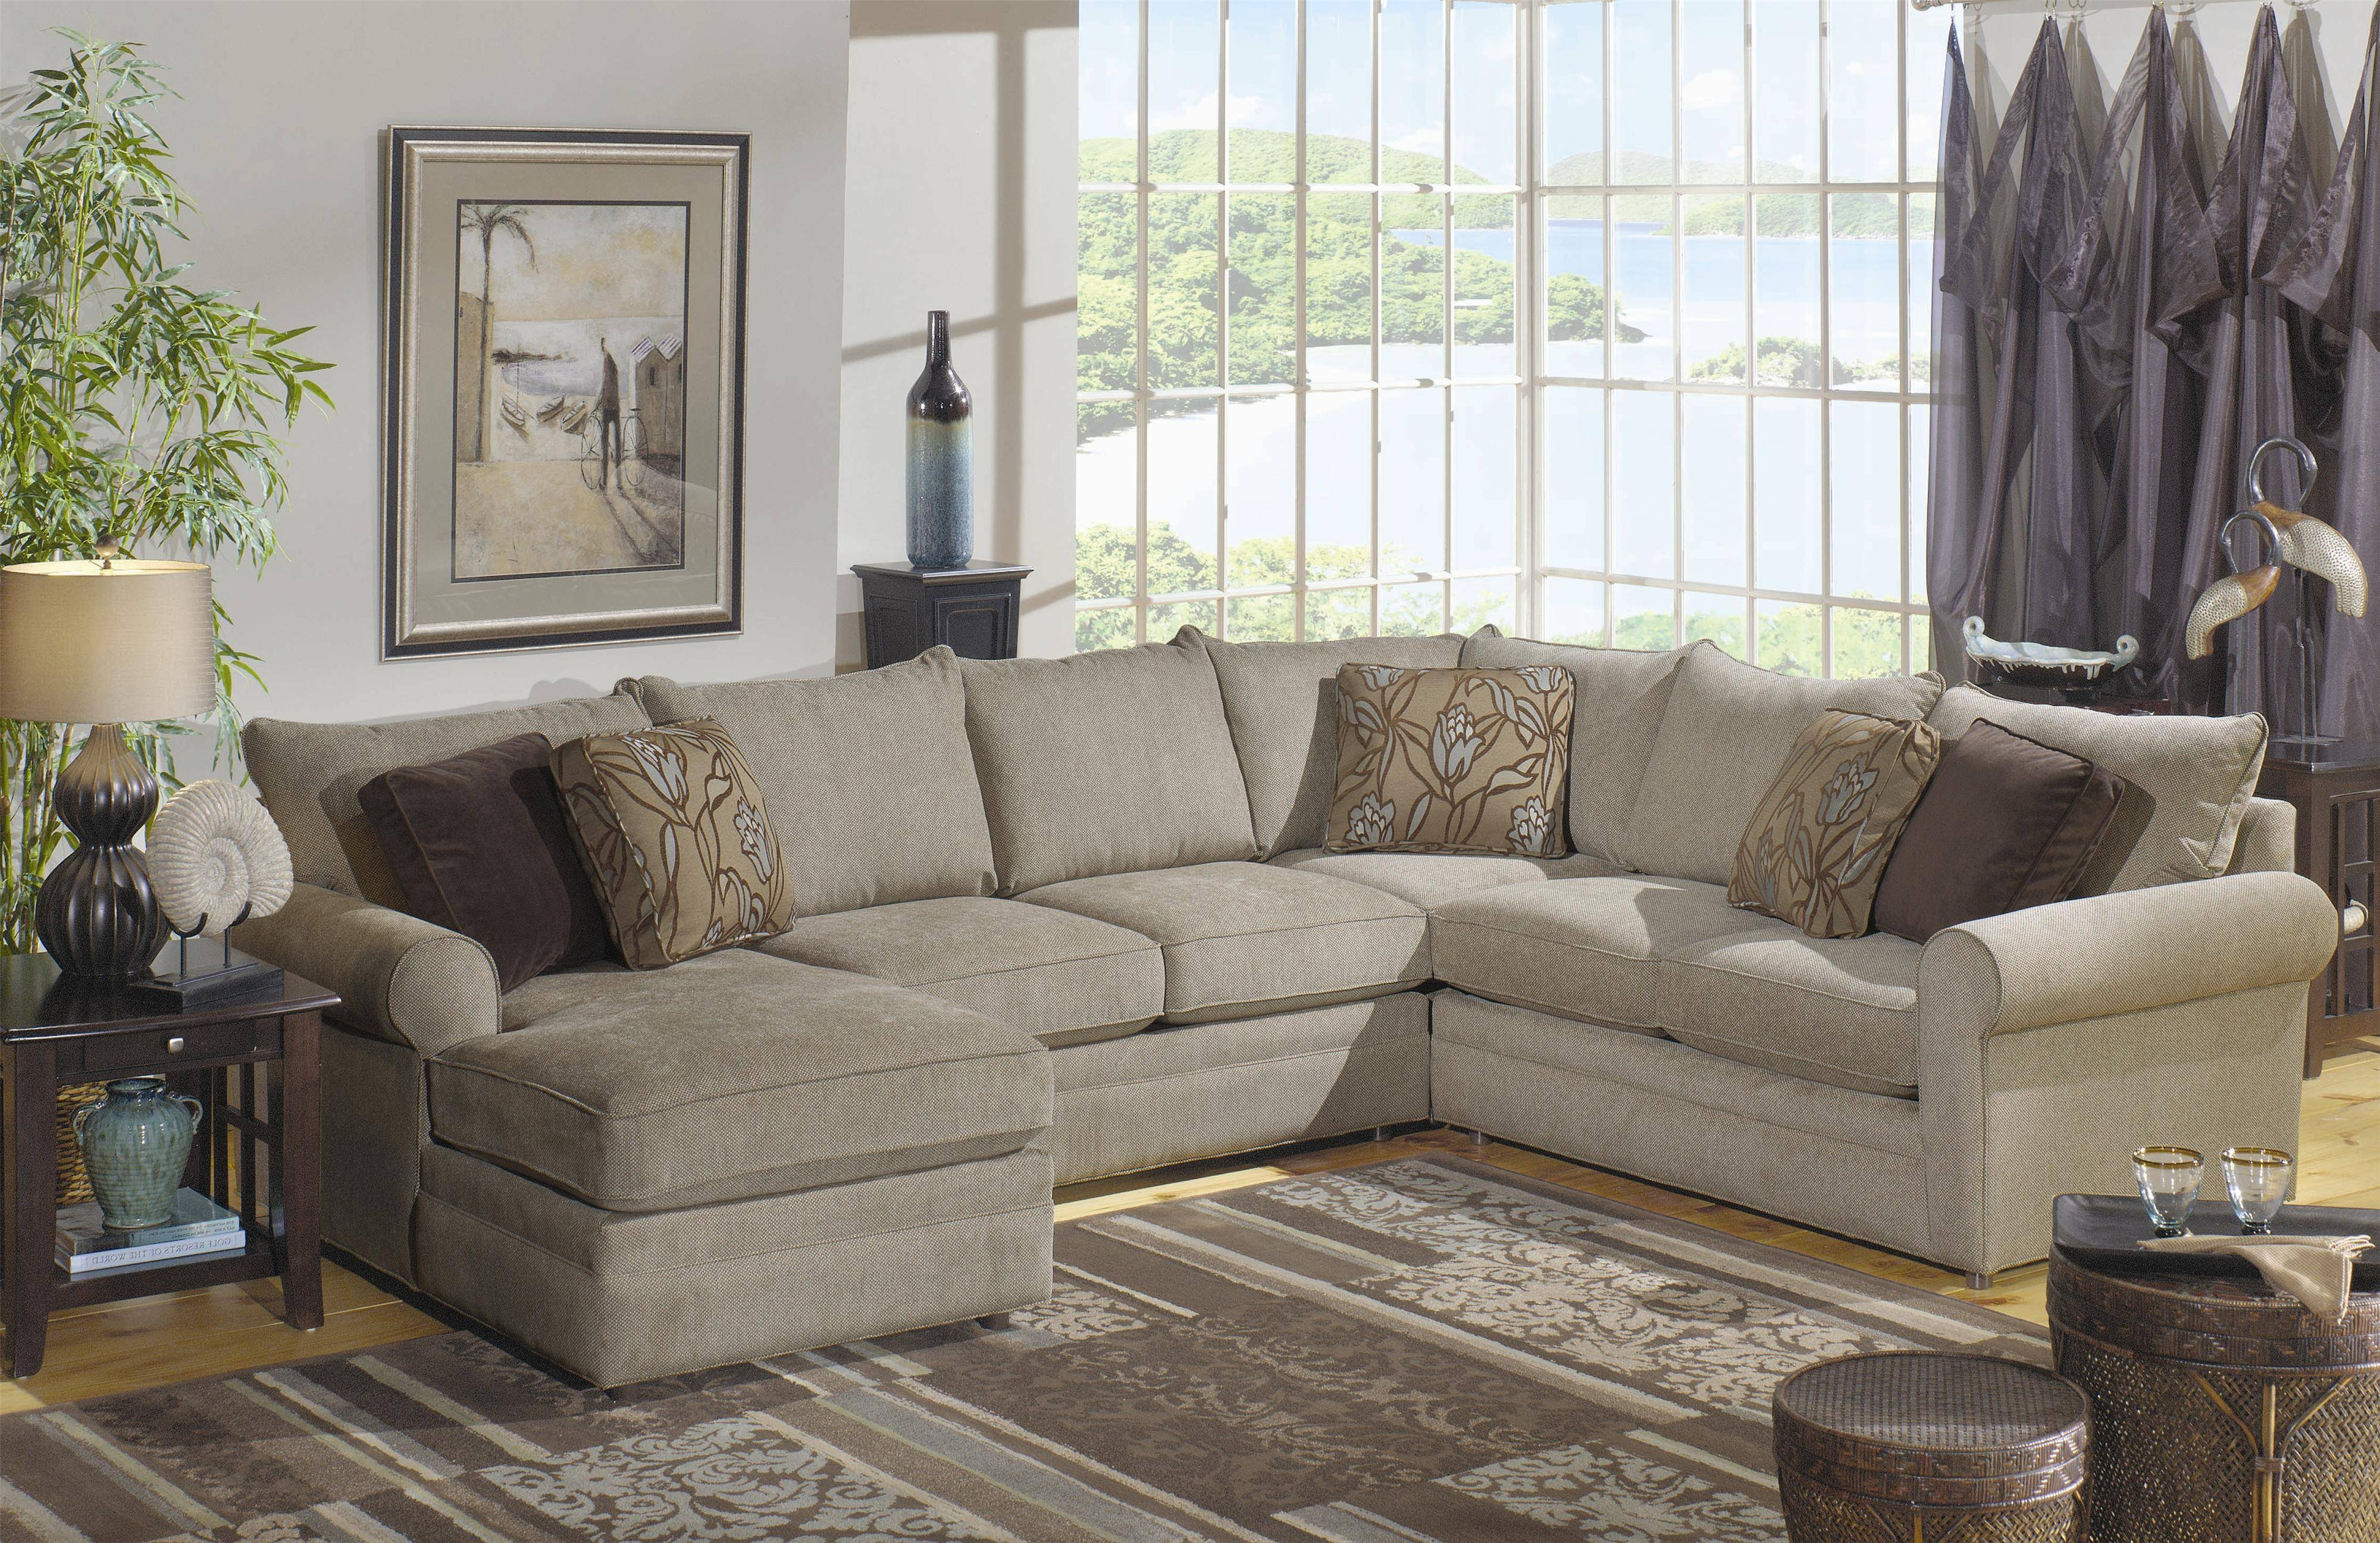 Charming Craftmaster Sectional Sofa 33 For Classic Sectional Sofas within Classic Sectional Sofas (Image 6 of 30)